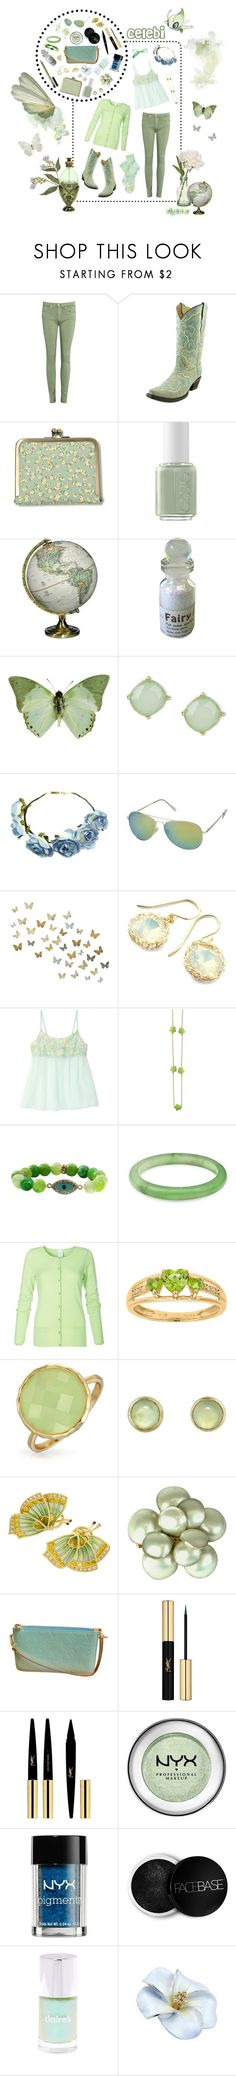 """Celebi"" by ck0427 ❤ liked on Polyvore featuring Peony, AG Adriano Goldschmied, Essie, National Geographic Home, WALL, YooLa, Bling Jewelry, Melissa Joy Manning, Louis Vuitton and Yves Saint Laurent"